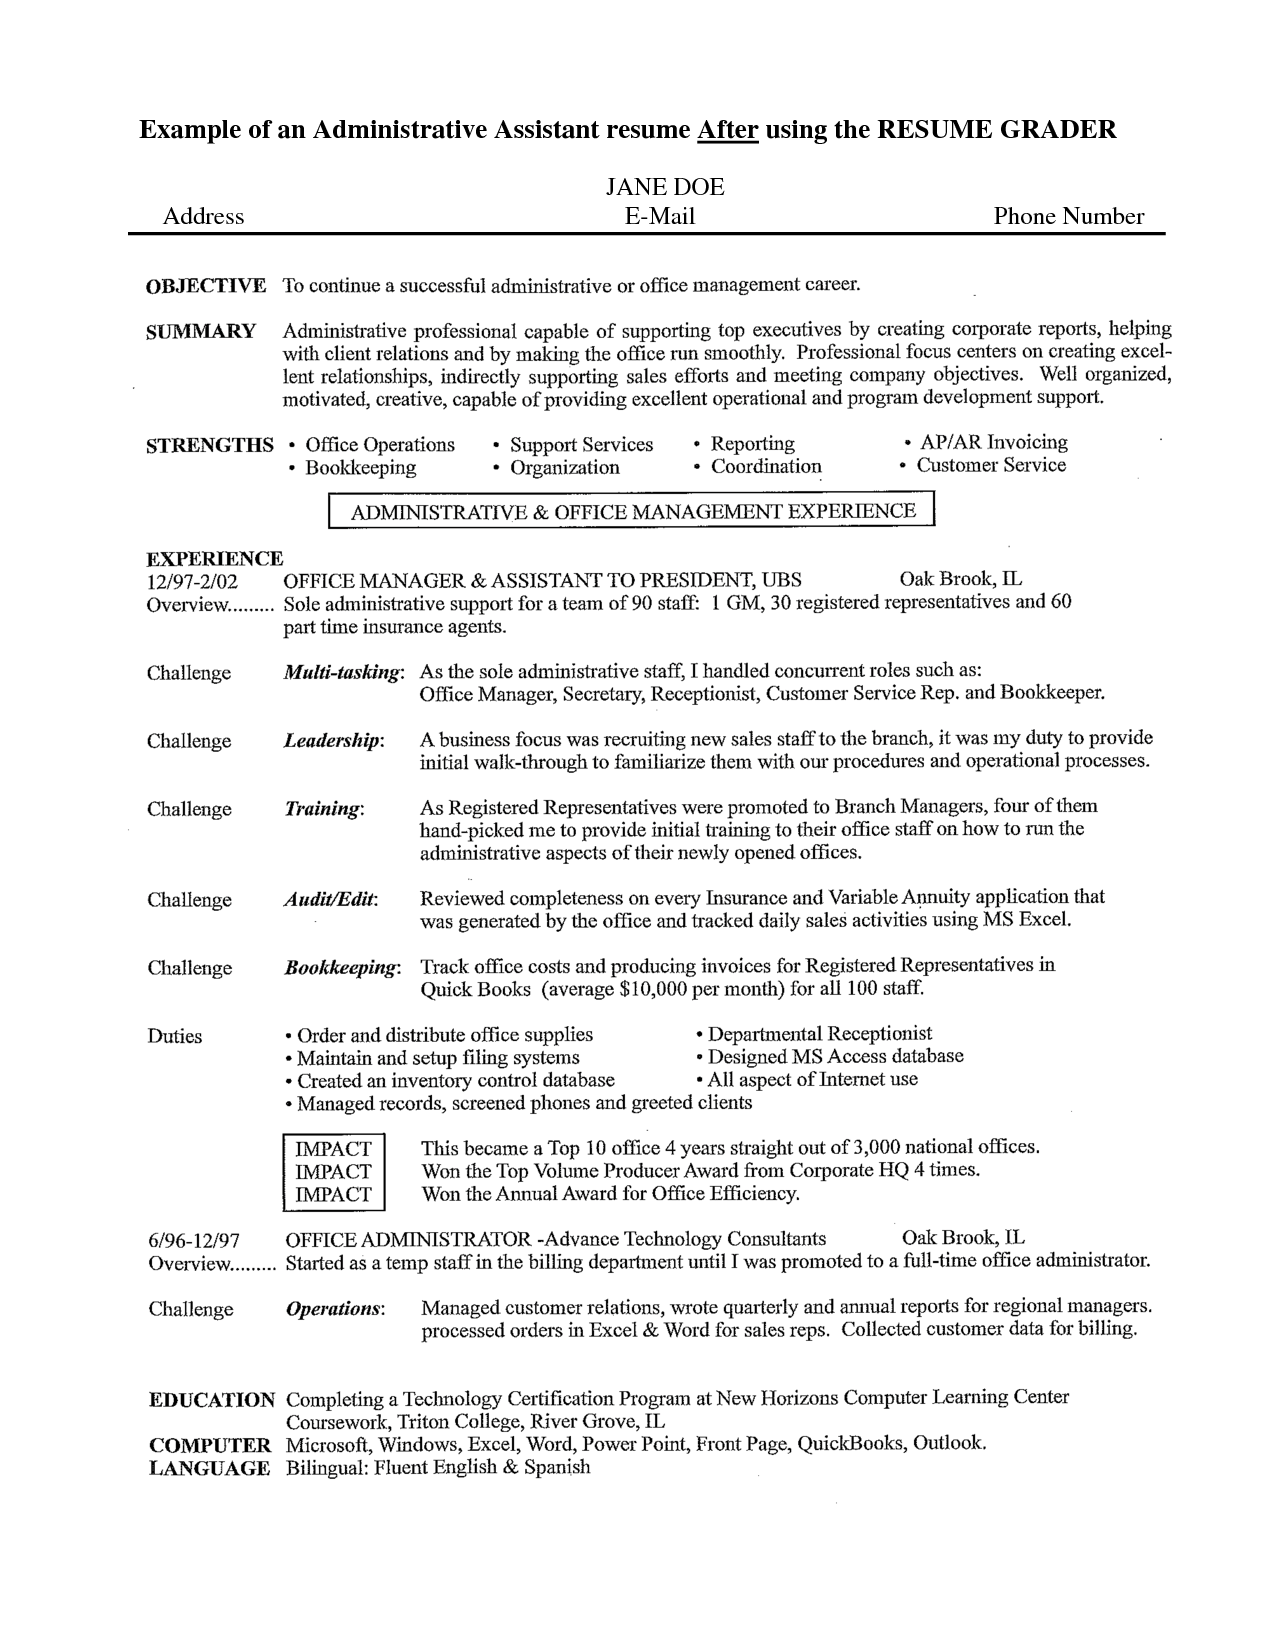 Resume Objective For Administrative Assistant Killer Resume Objectives Best Ideas About Career Sales Advertising